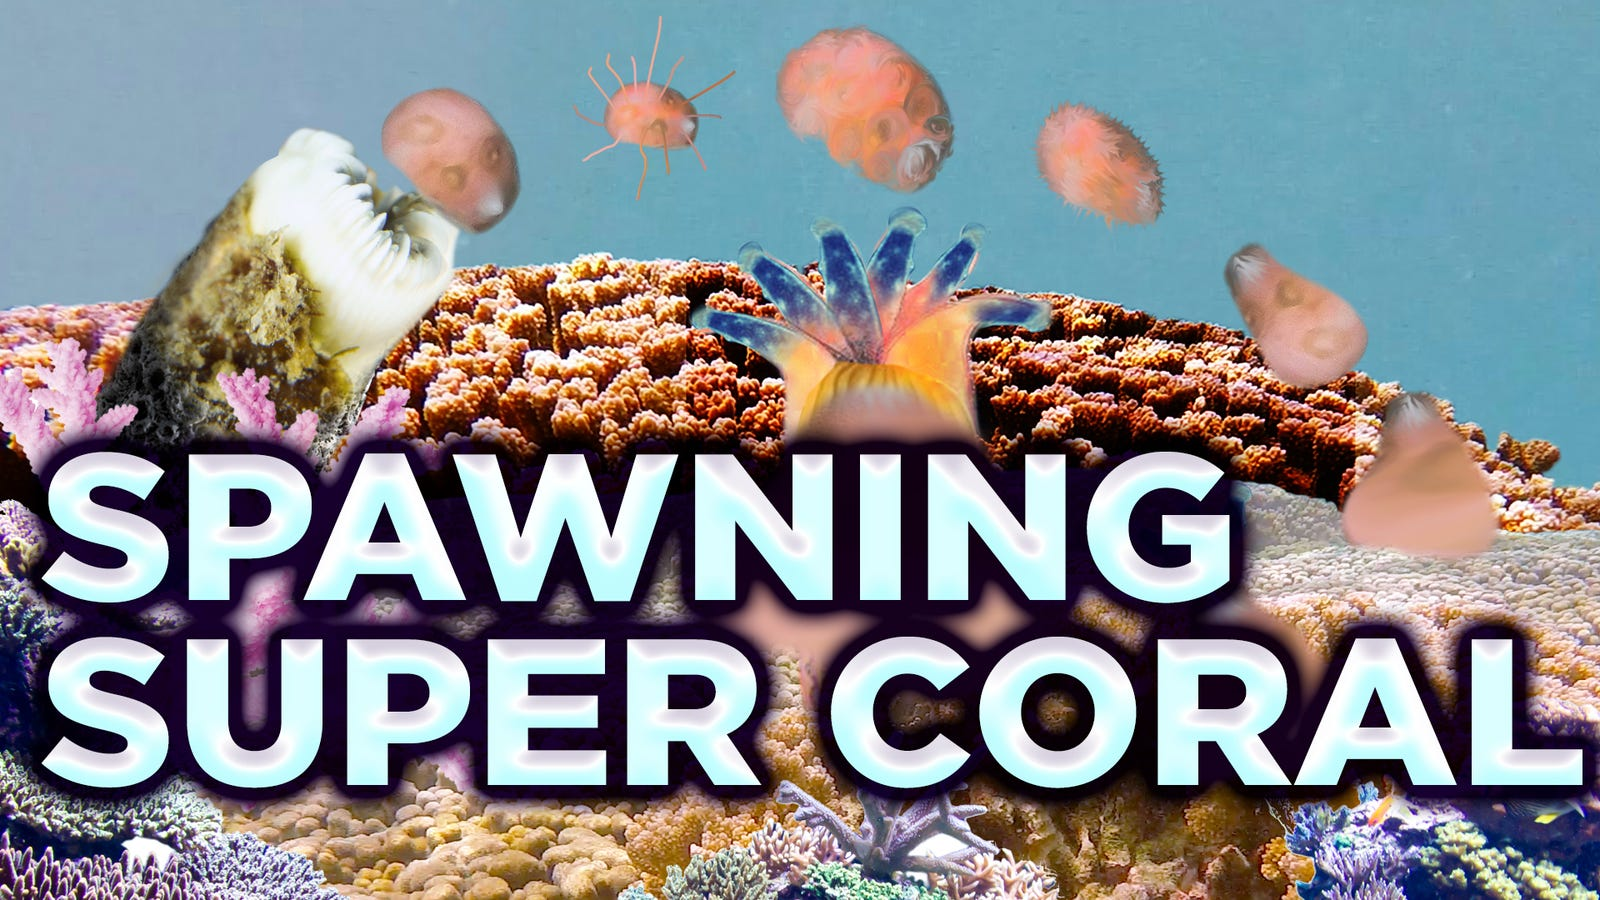 How a Superheroic Breed of Coral Could Help Save the Reefs